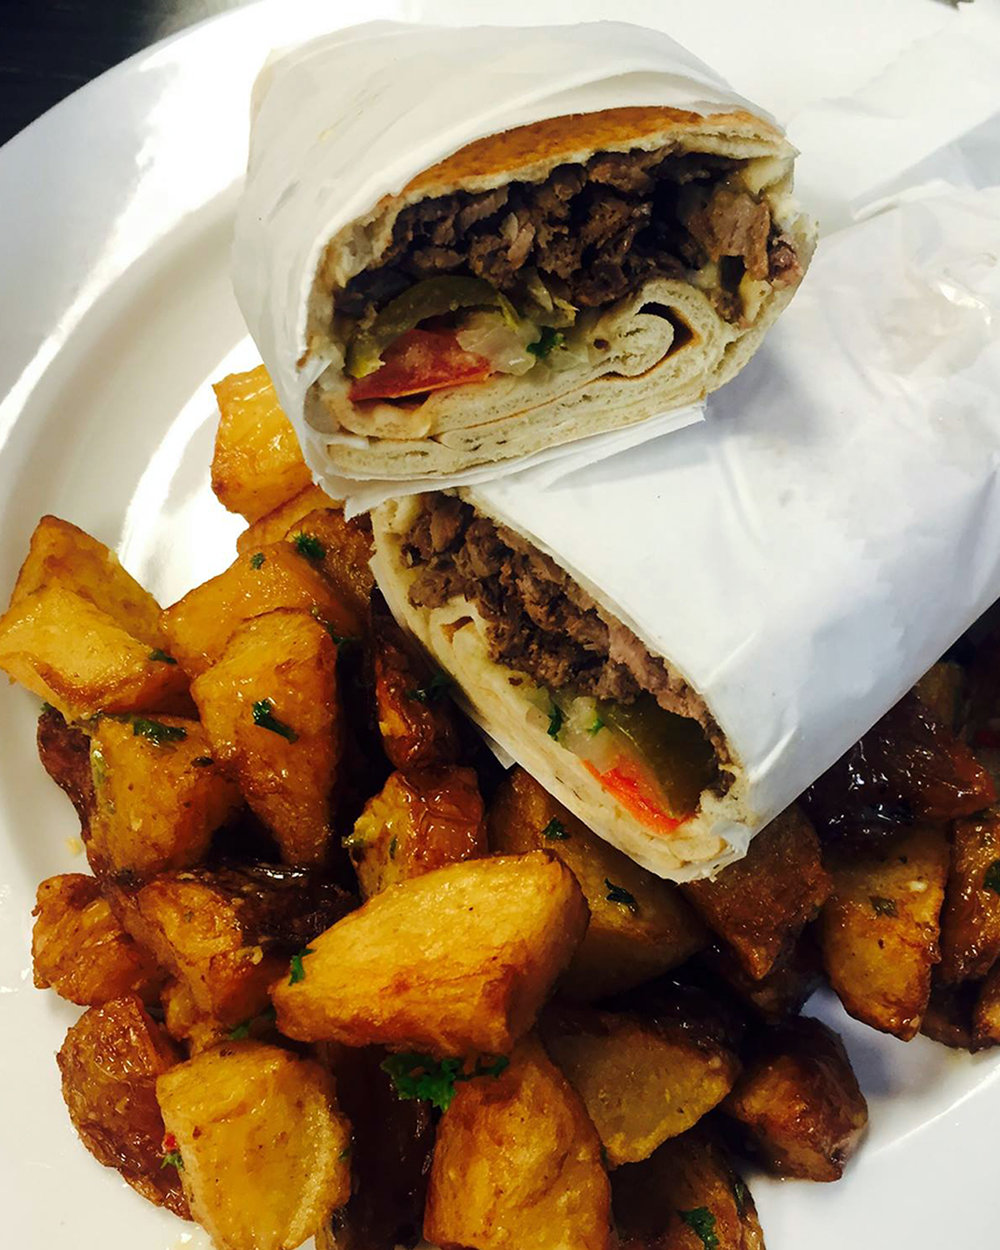 Kebab-JeWhy? Sometimes you need a really good falafel. Authentic Lebanese food in a cozy atmosphere. - kababje.com2233 Matthews Township Pkwy Ste E (In Sycamore Commons)T-Sa 11 AM - 9:30 PM, Su 11 AM - 9 PM, closed Monday(Photo source Facebook)